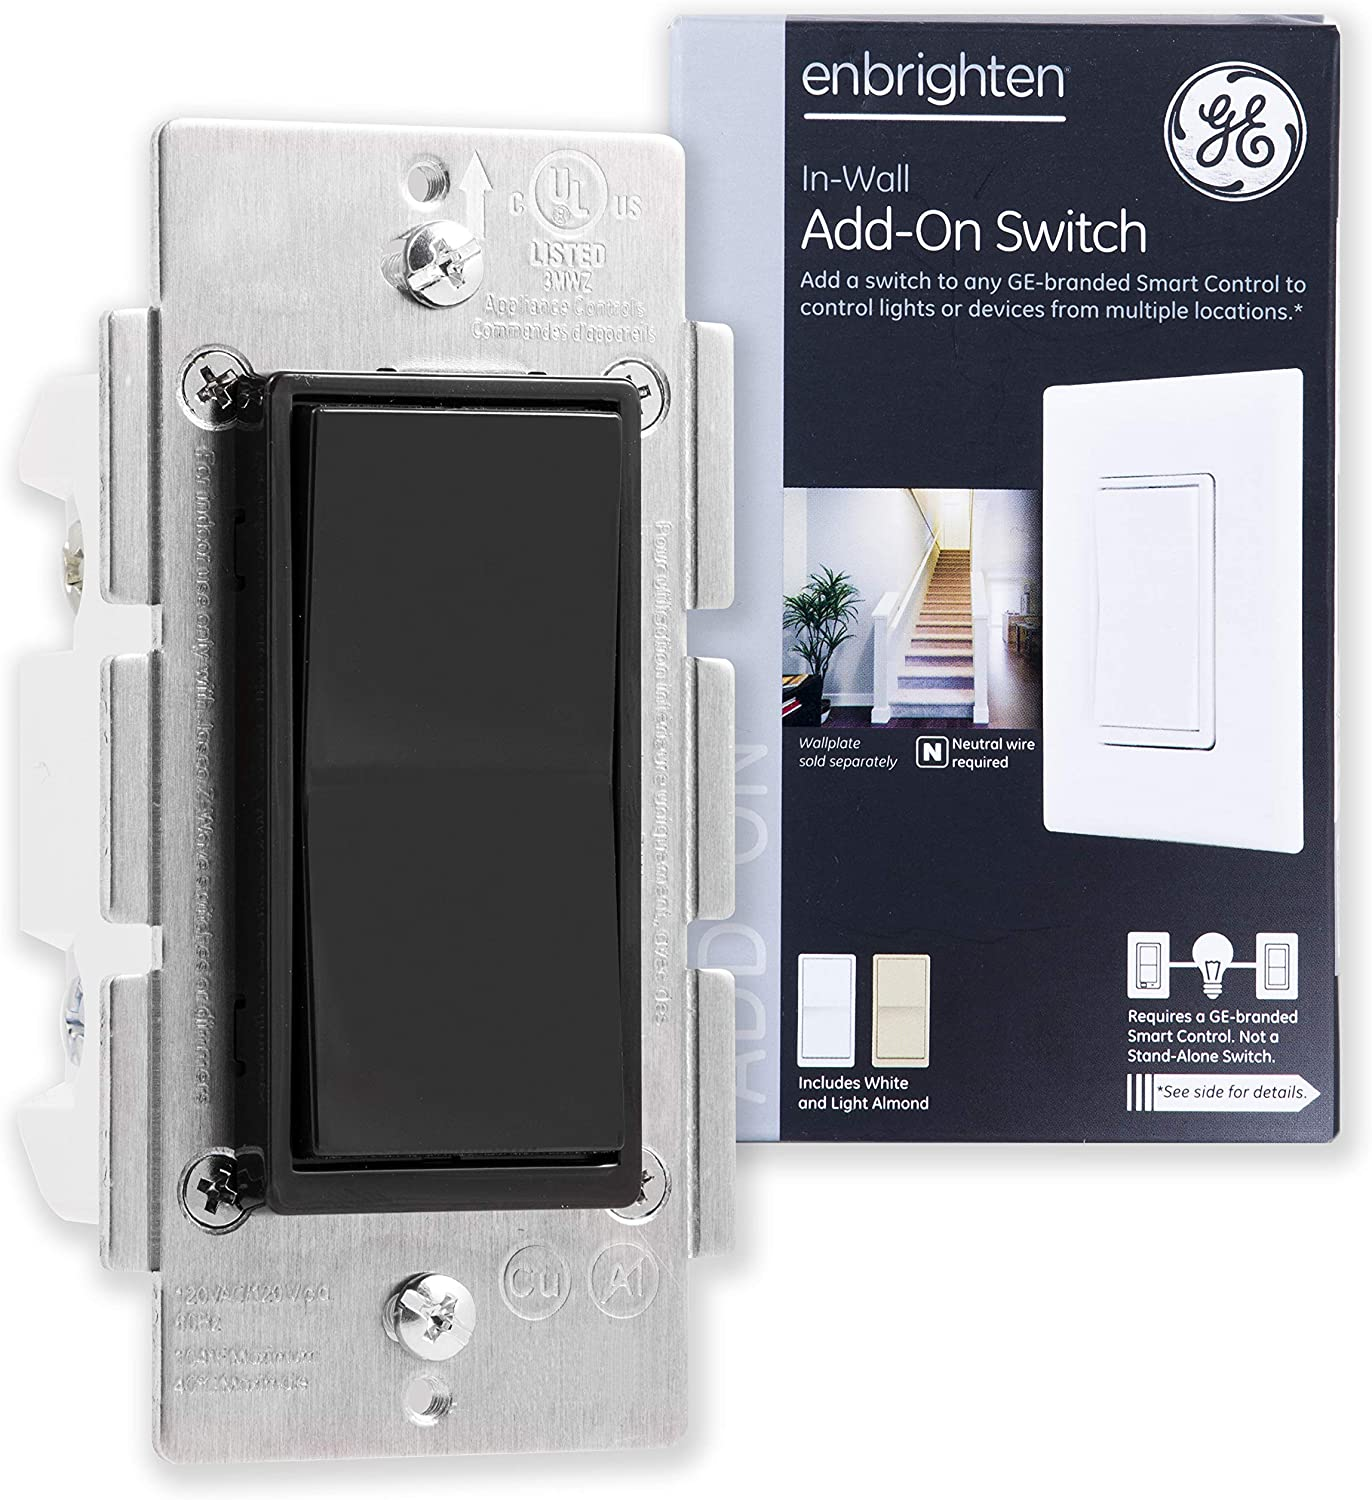 GE Add Z-Wave, ZigBee Bluetooth Wireless Smart Lighting Controls, NOT A STANDALONE Switch, Black Paddle, 35545, Compatible with Alexa